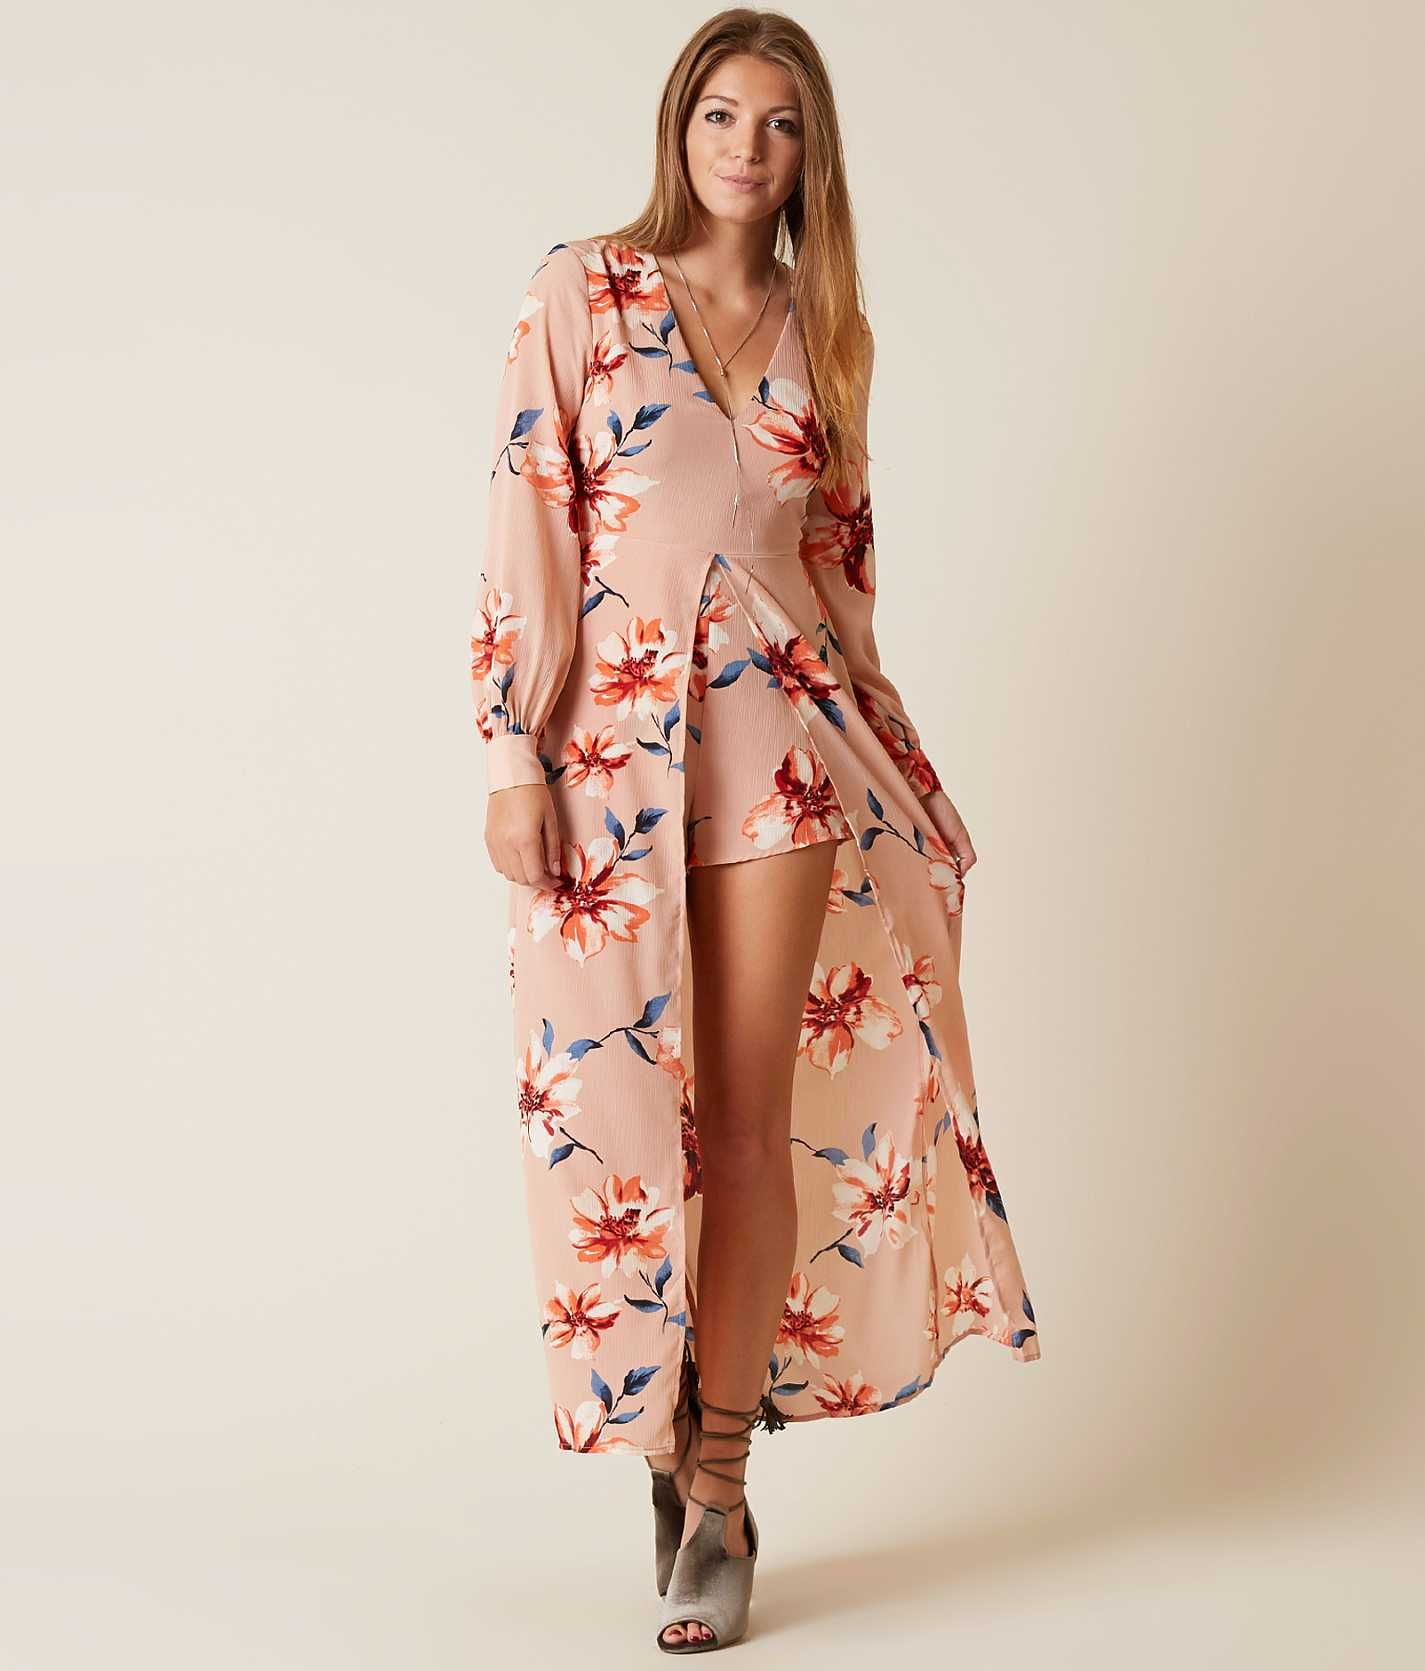 753658bbf96 Lush Floral Maxi Romper - Women s Rompers Jumpsuits in Blush Coral ...